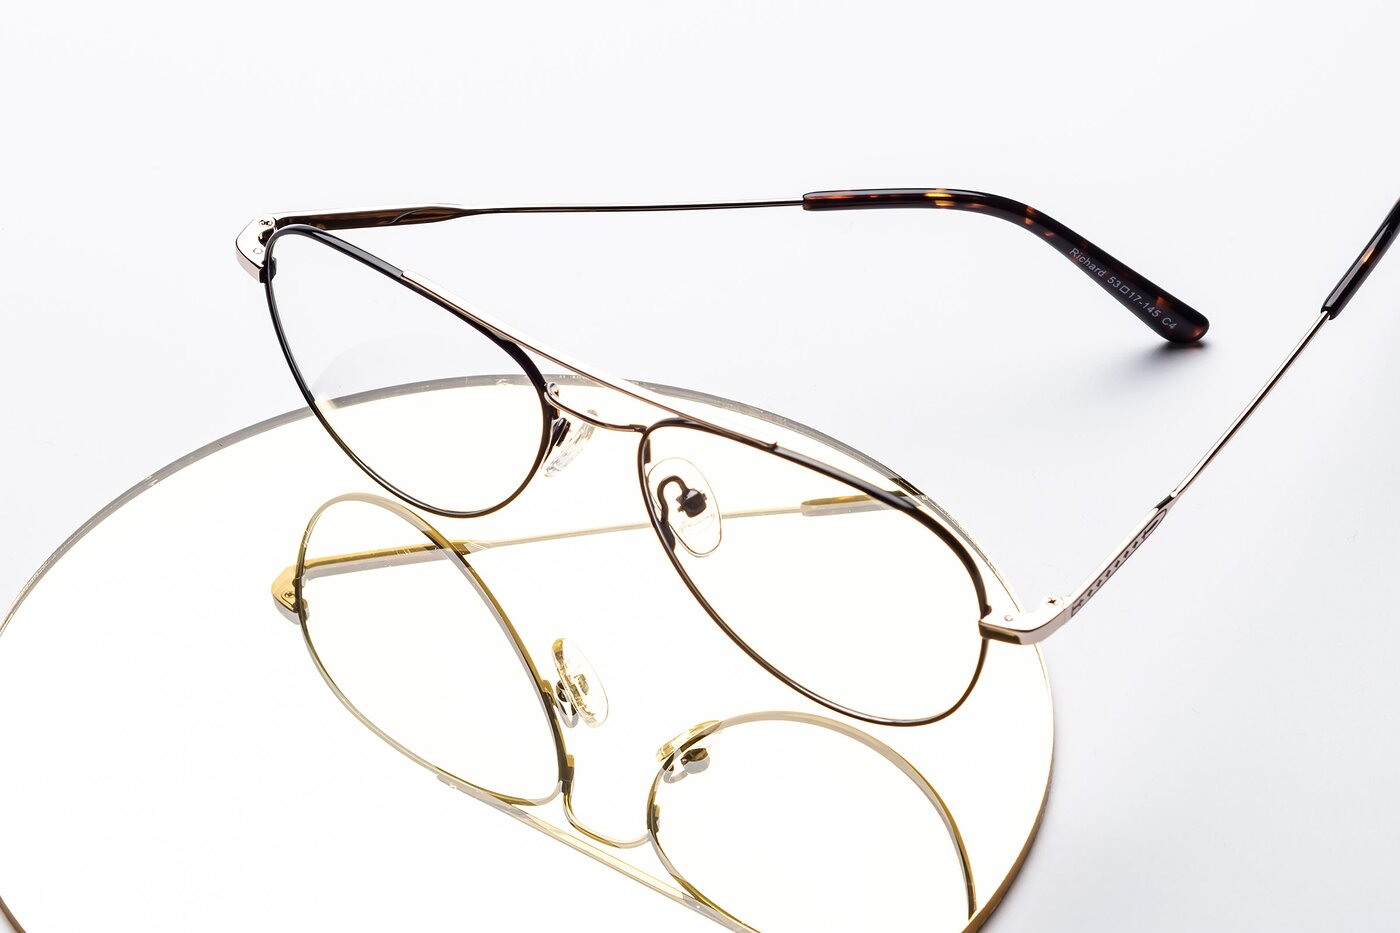 Black-Gold Lightweight Metal Aviator Eyeglasses